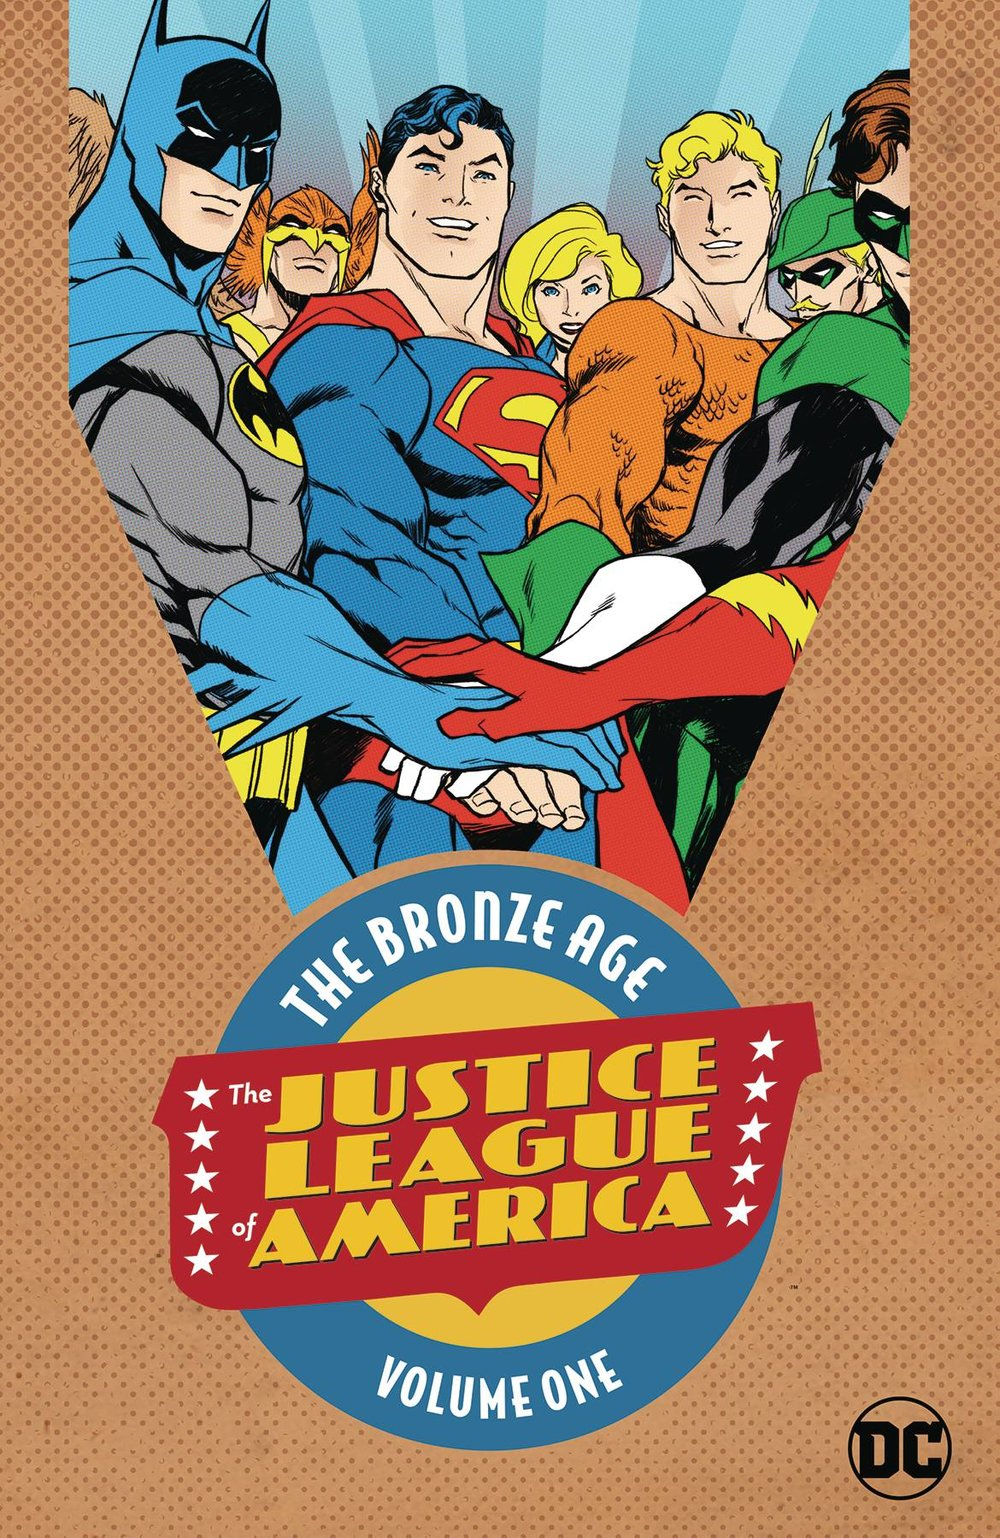 JUSTICE LEAGUE OF AMERICA THE BRONZE AGE TP 1.jpg